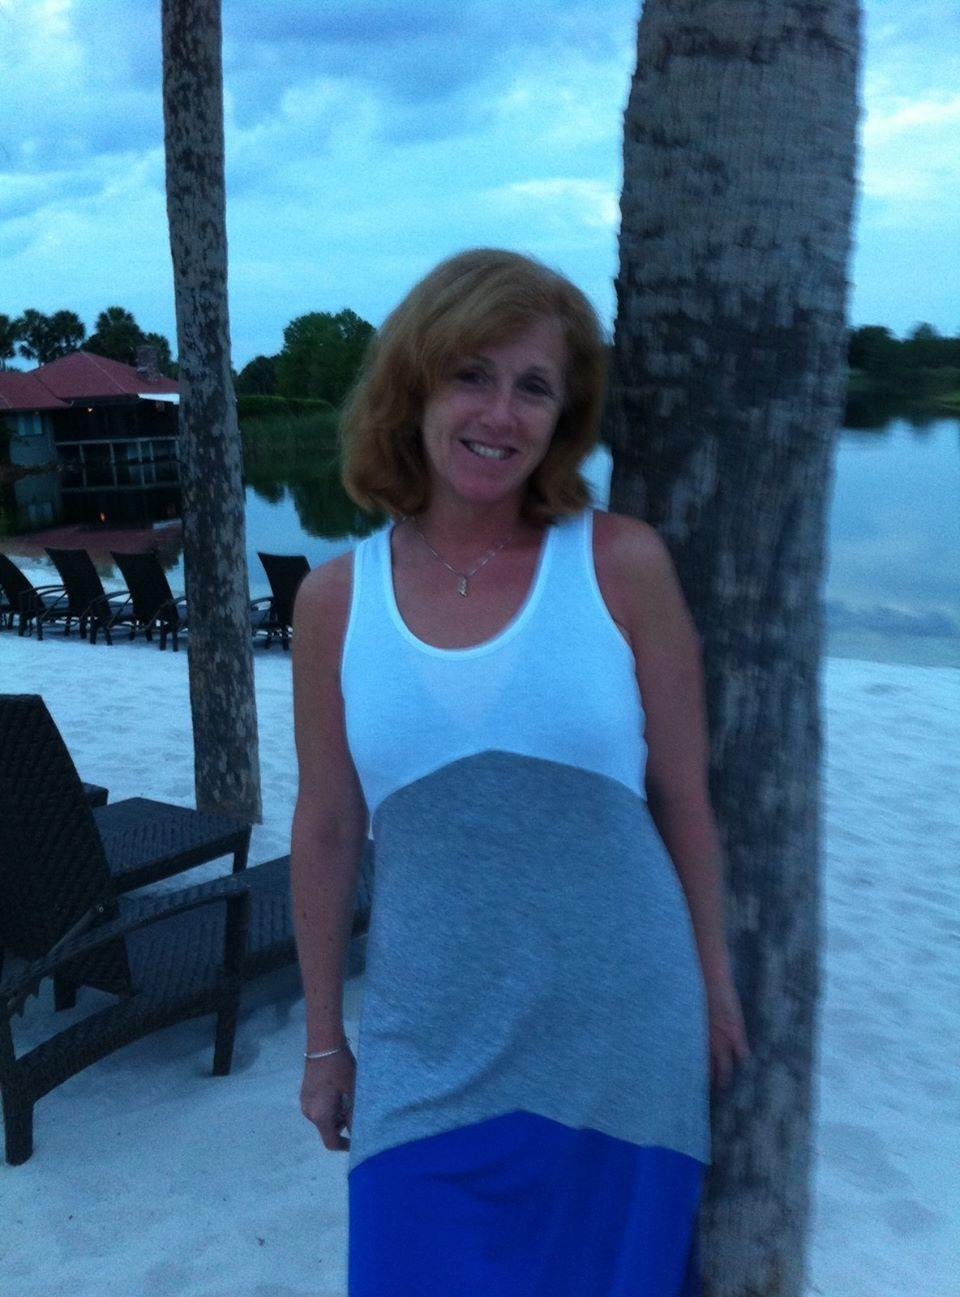 singles over 50 in new braintree Meet singles over 50 in new york interested in dating new people on zoosk date smarter and meet more singles interested in dating.